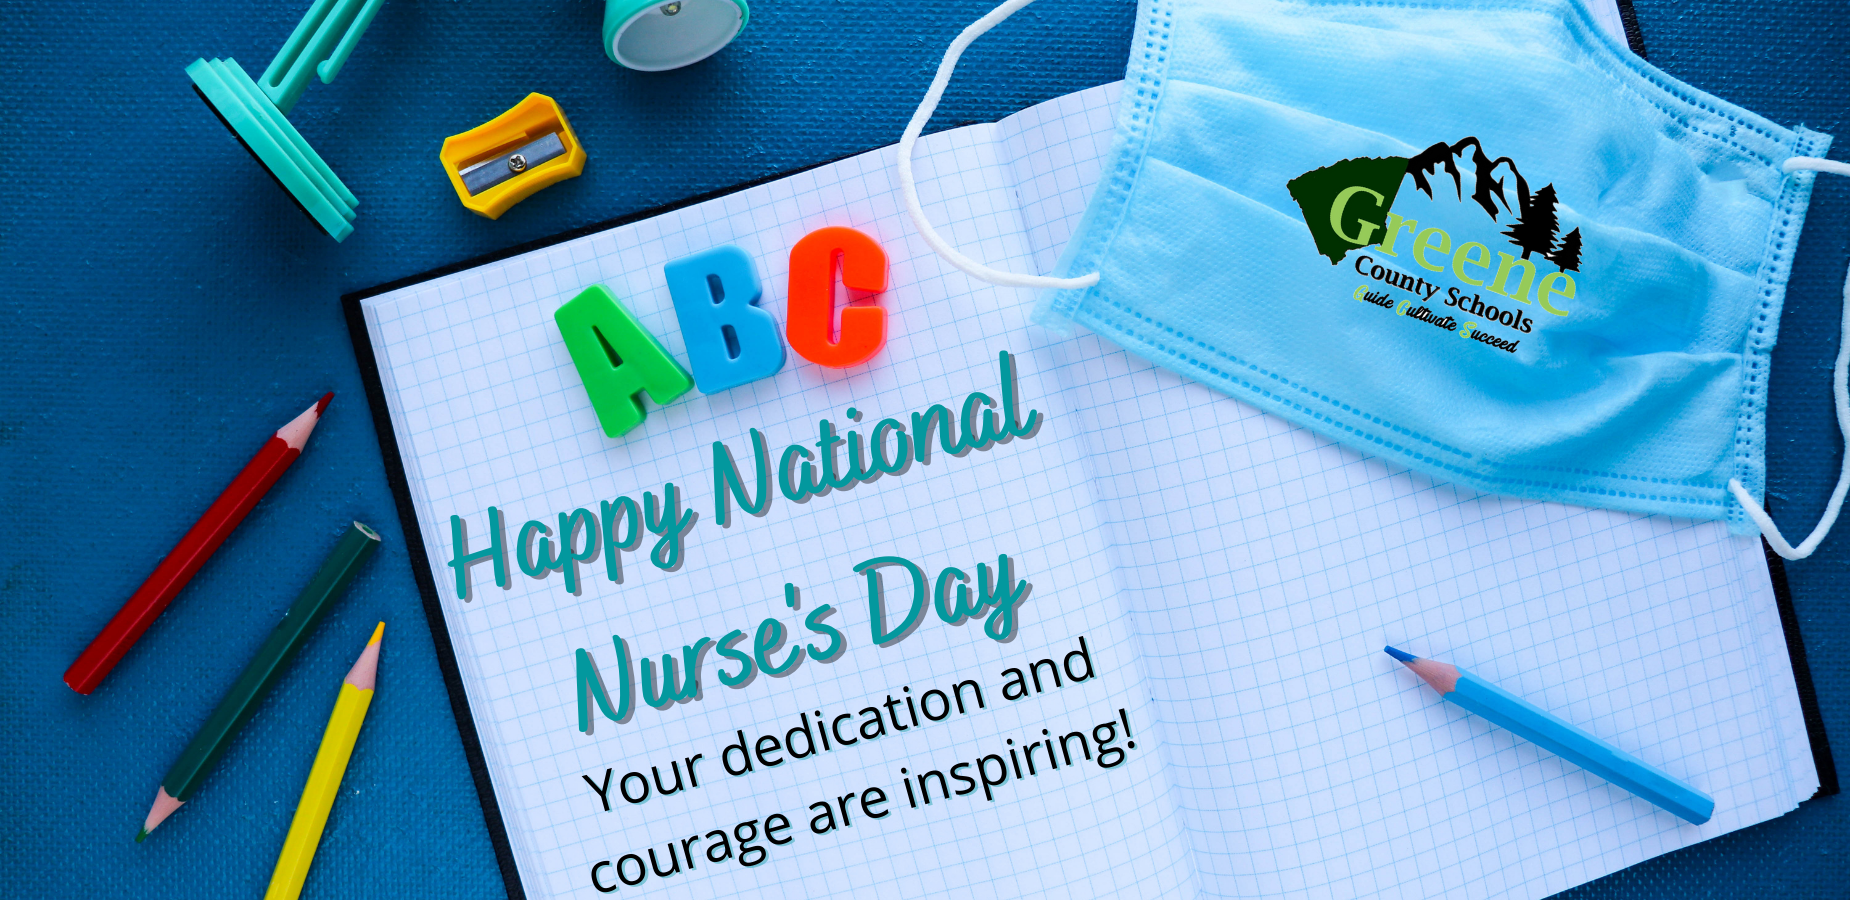 Happy National Nurse's Day to our school nurses.